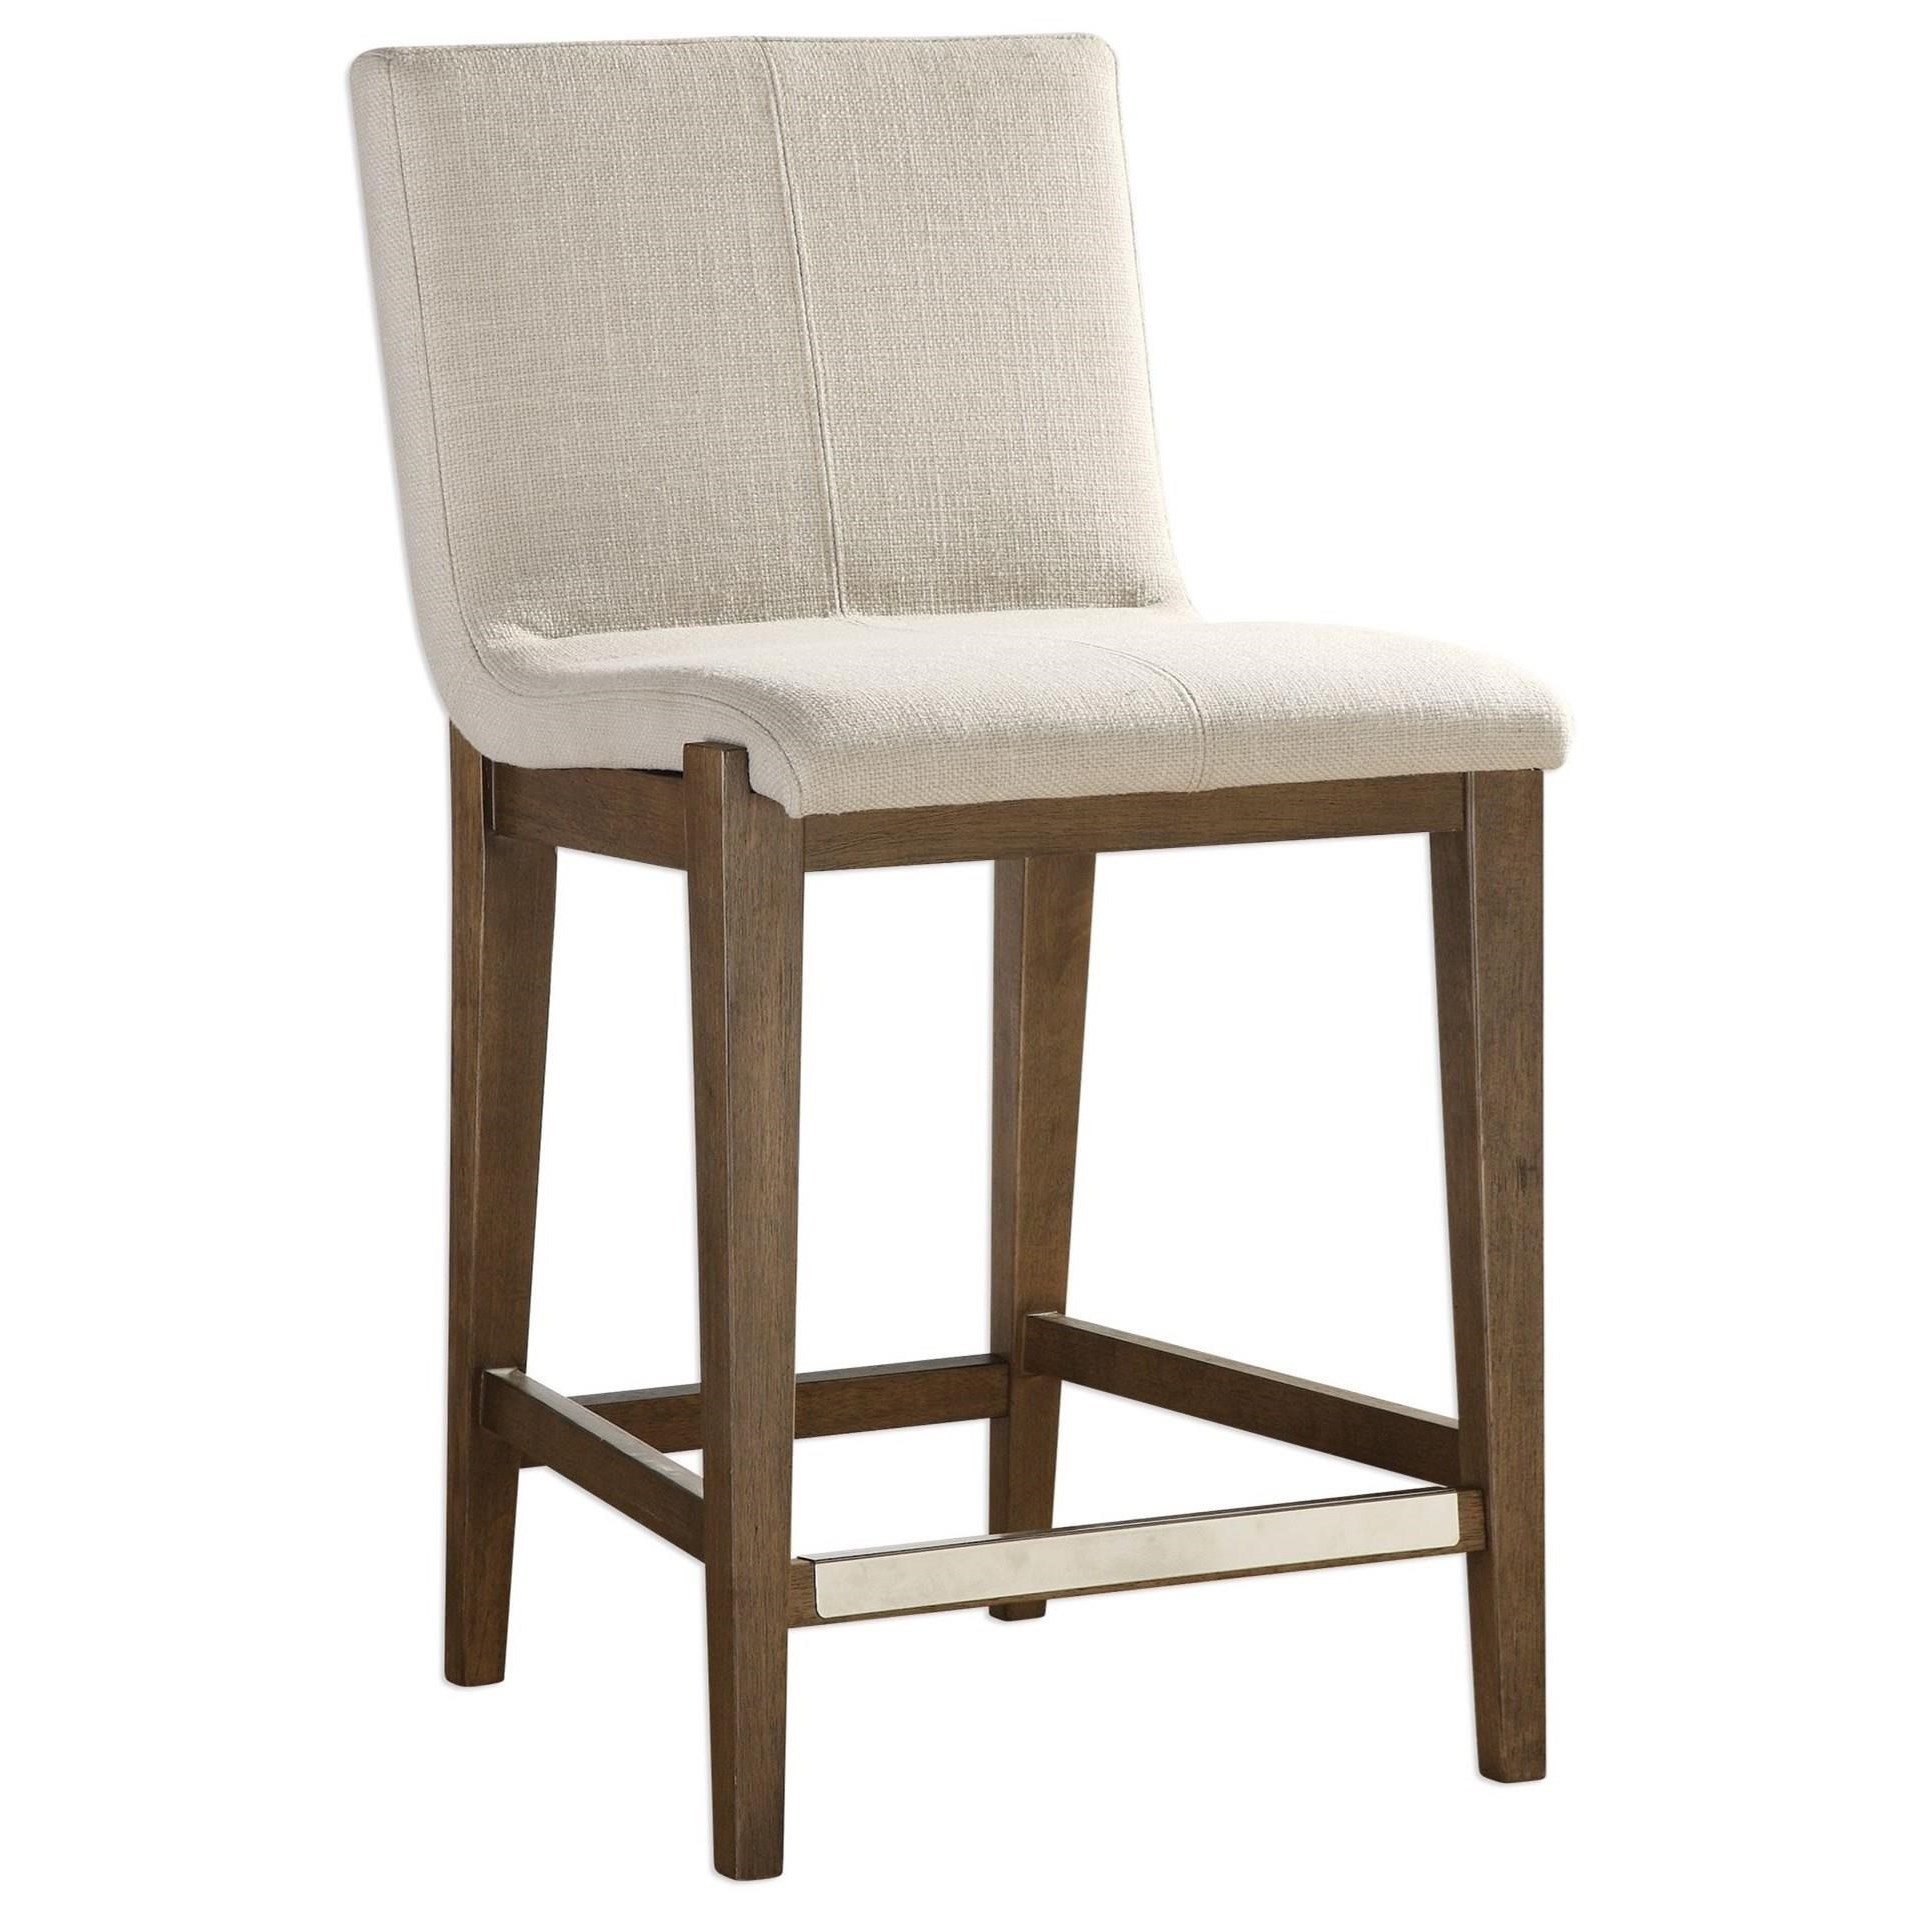 Accent Furniture - Stools Klemens Linen Counter Stool by Uttermost at Factory Direct Furniture